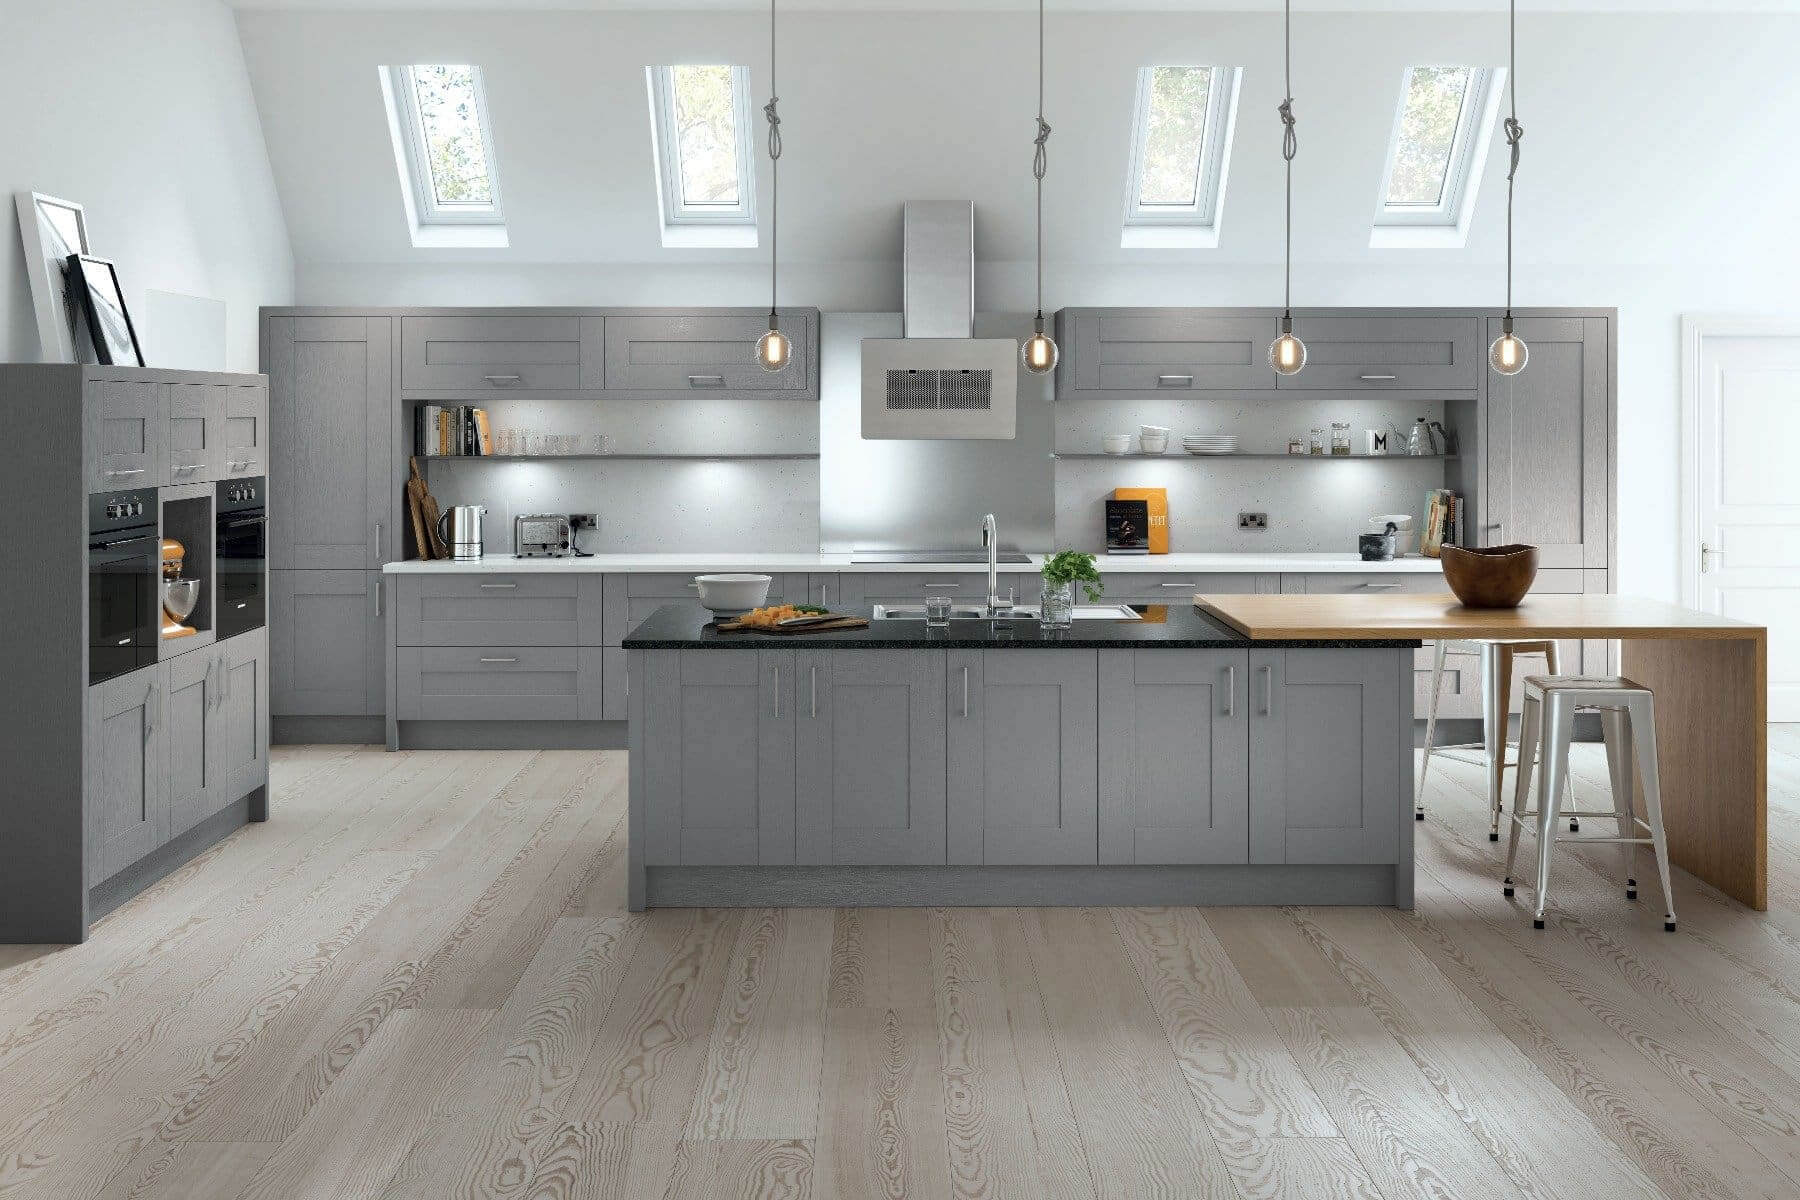 Diy Kitchens Available To Buy Online With Plan And Design Service